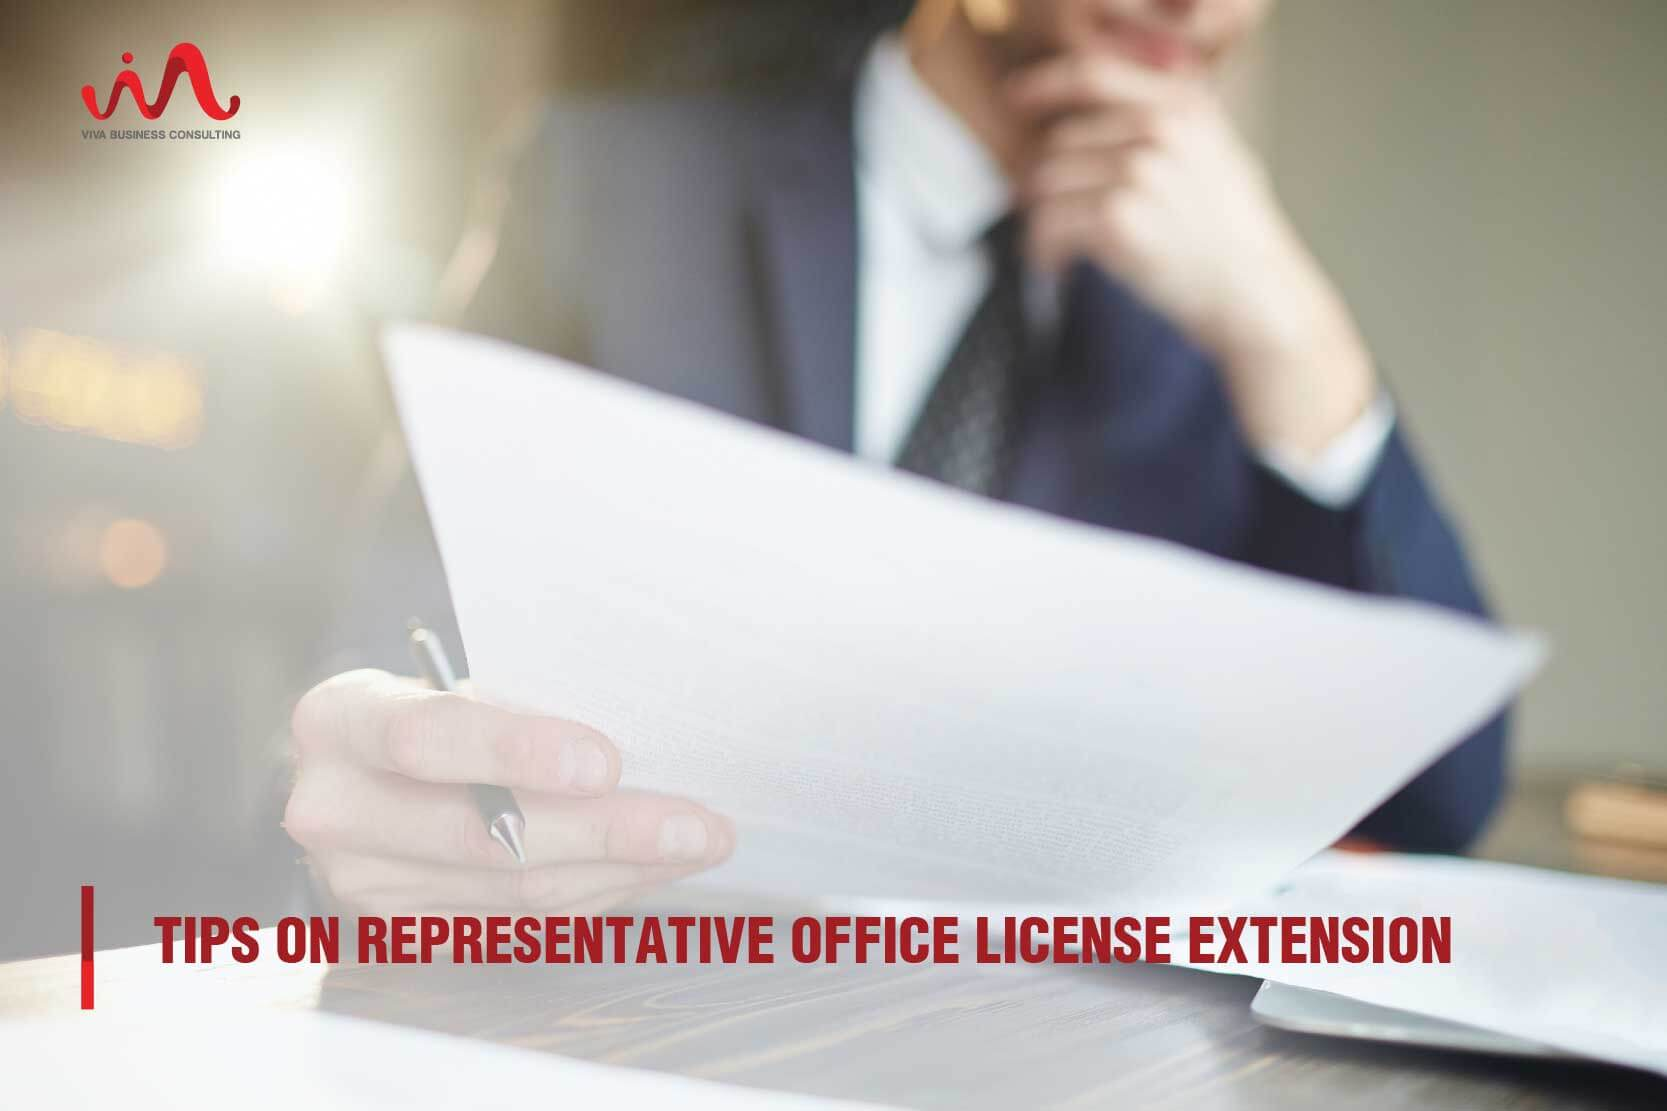 License extension of representative office in Vietnam